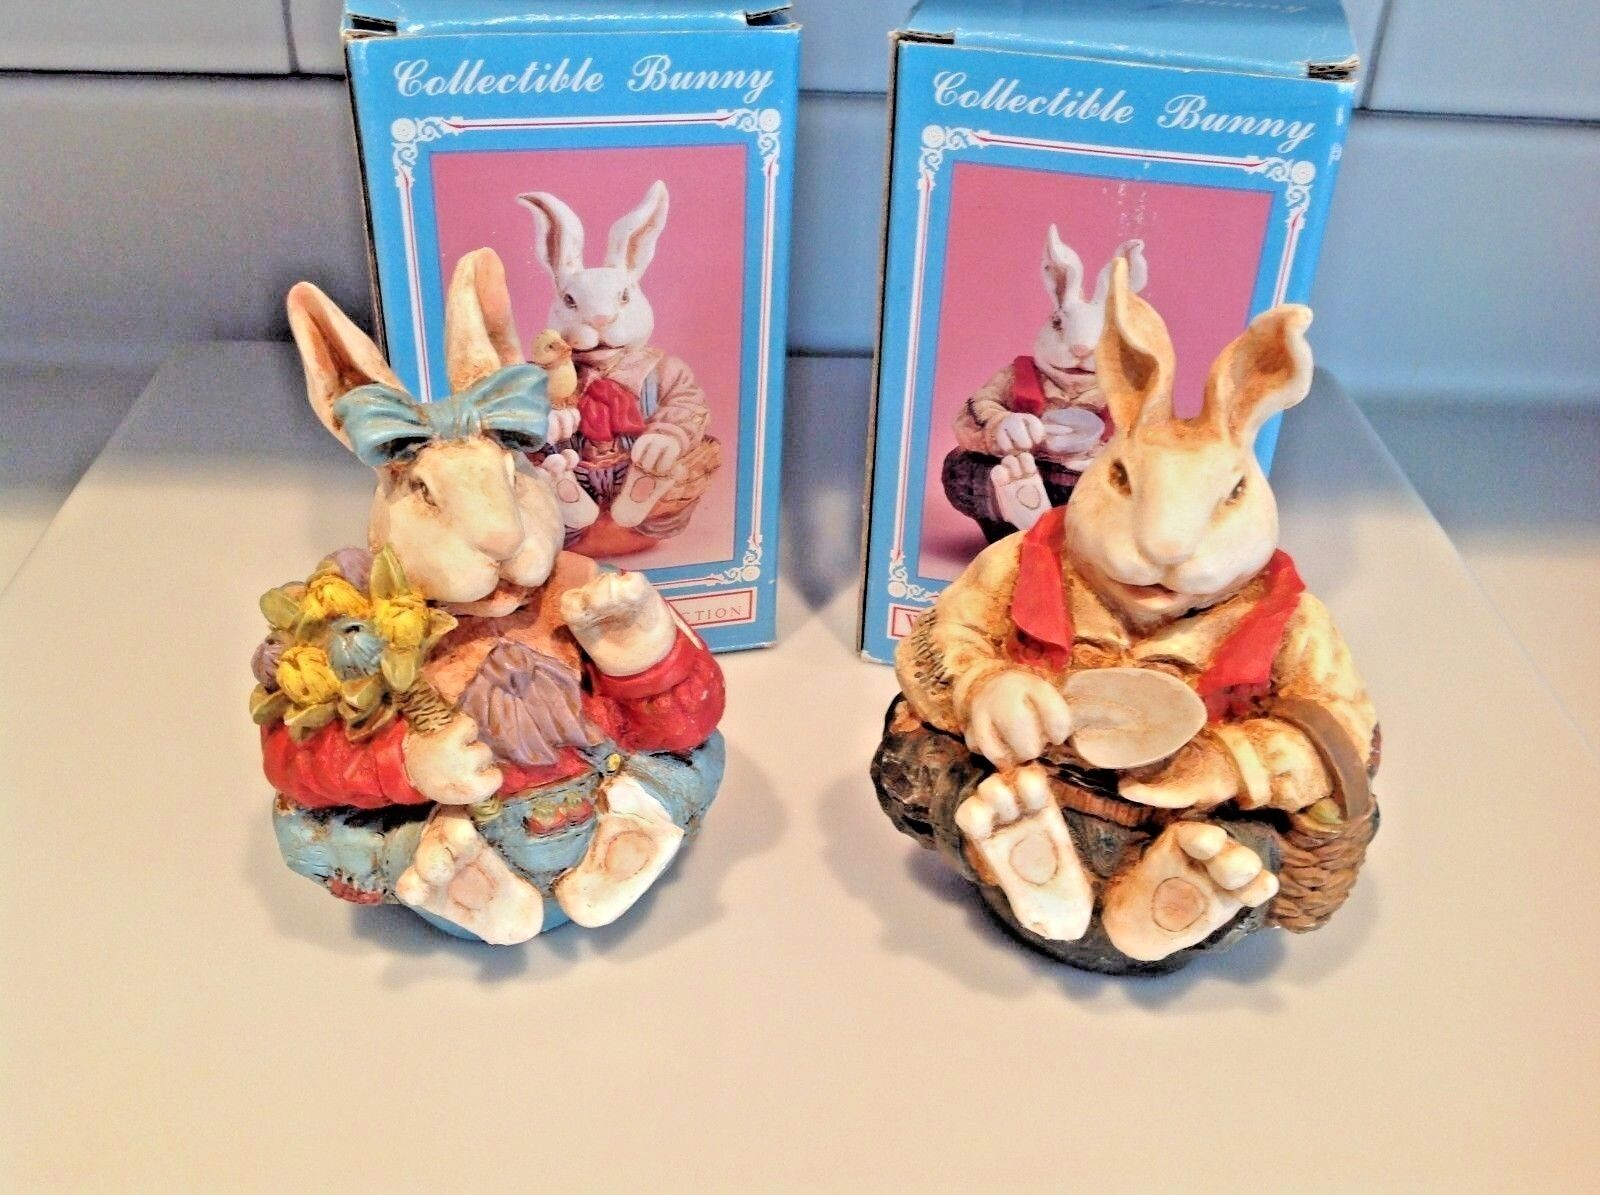 easter decorations set of 2 bunnies windsor collection collectible bunny